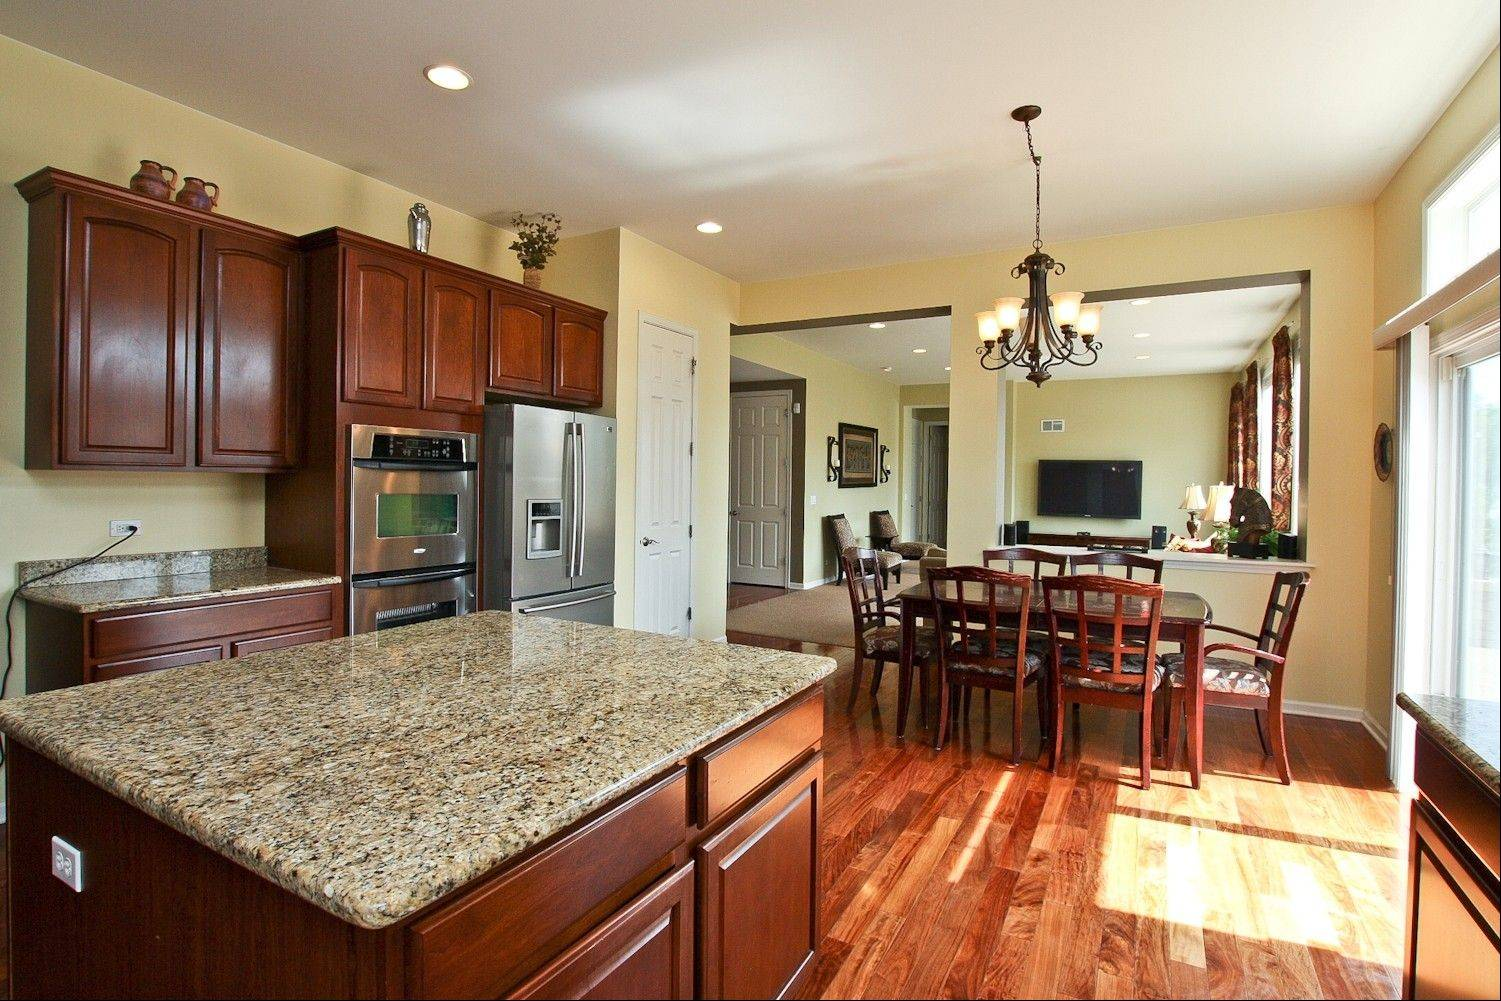 The large kitchen makes an instant impression.